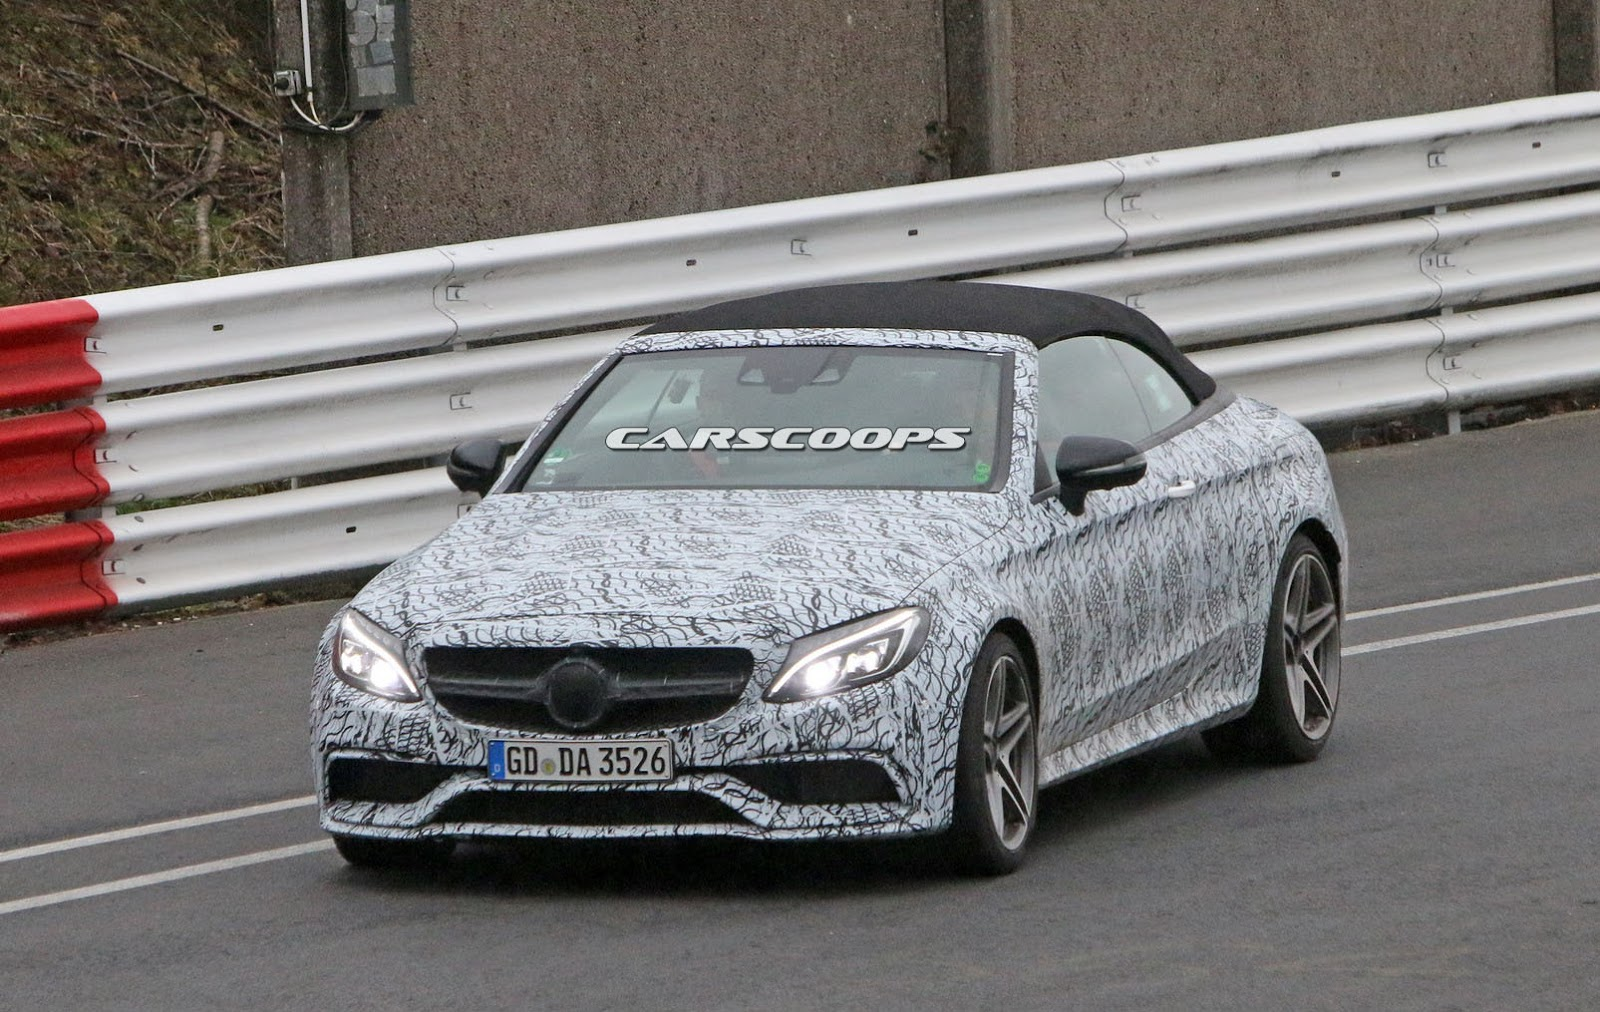 New Mercedes Amg C63 S Convertible Spied Blasting Its 503